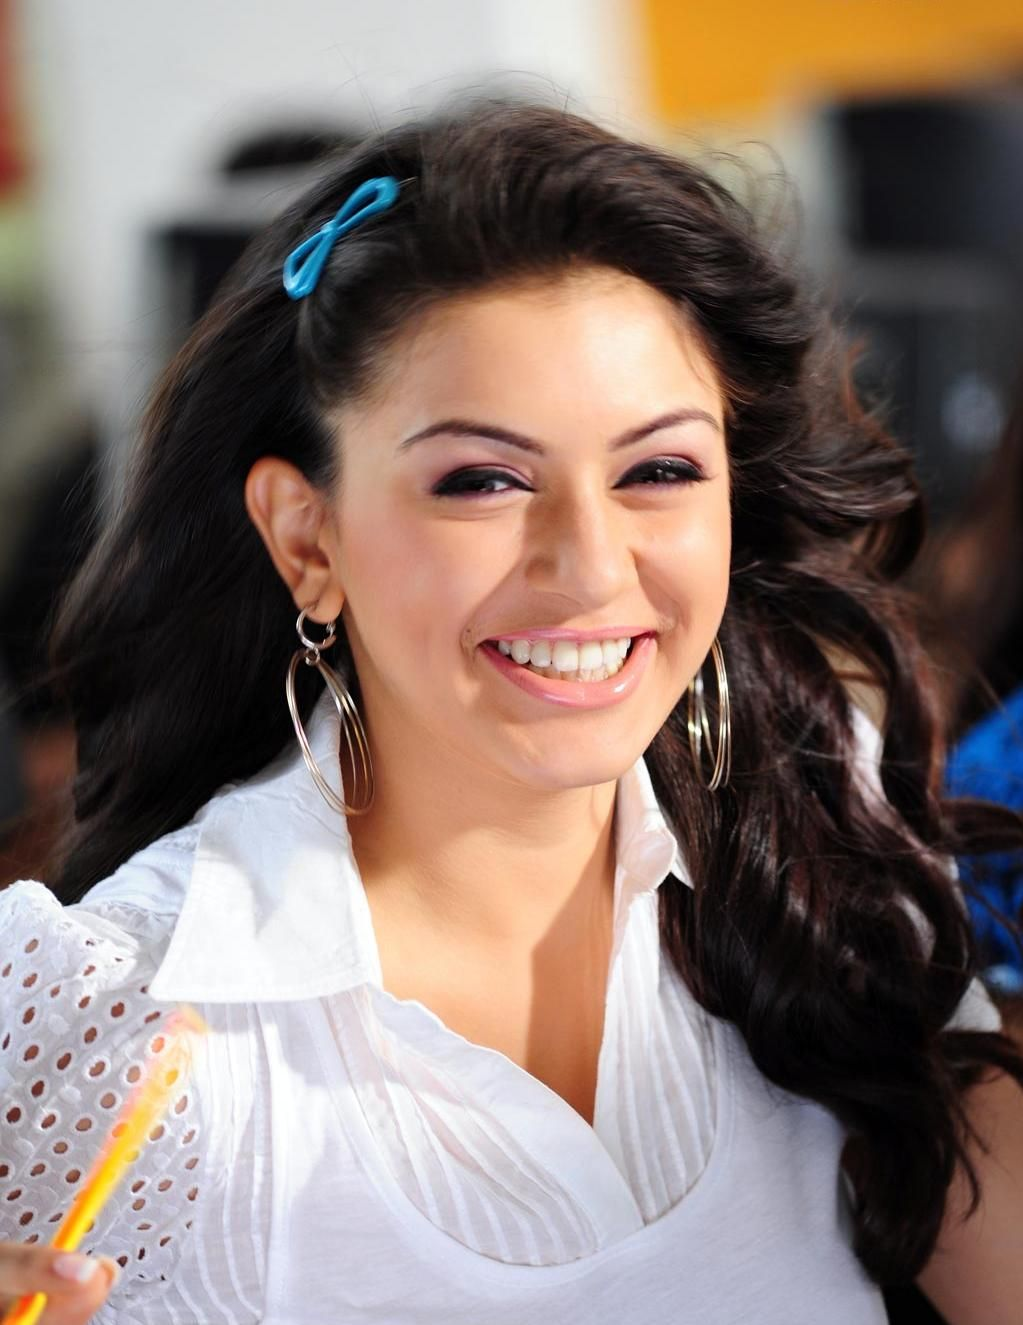 hansika motwani latest bikinihansika motwani 2017, hansika motwani wiki, hansika motwani hansika motwani, hansika motwani films, hansika motwani age, hansika motwani biography, hansika motwani 2016, hansika motwani instagram photos, hansika motwani bogan photos, hansika motwani фильмы, hansika motwani instagram, hansika motwani cinespot.net, hansika motwani filmleri, hansika motwani latest bikini, hansika motwani songs, hansika motwani movie list, hansika motwani official instagram